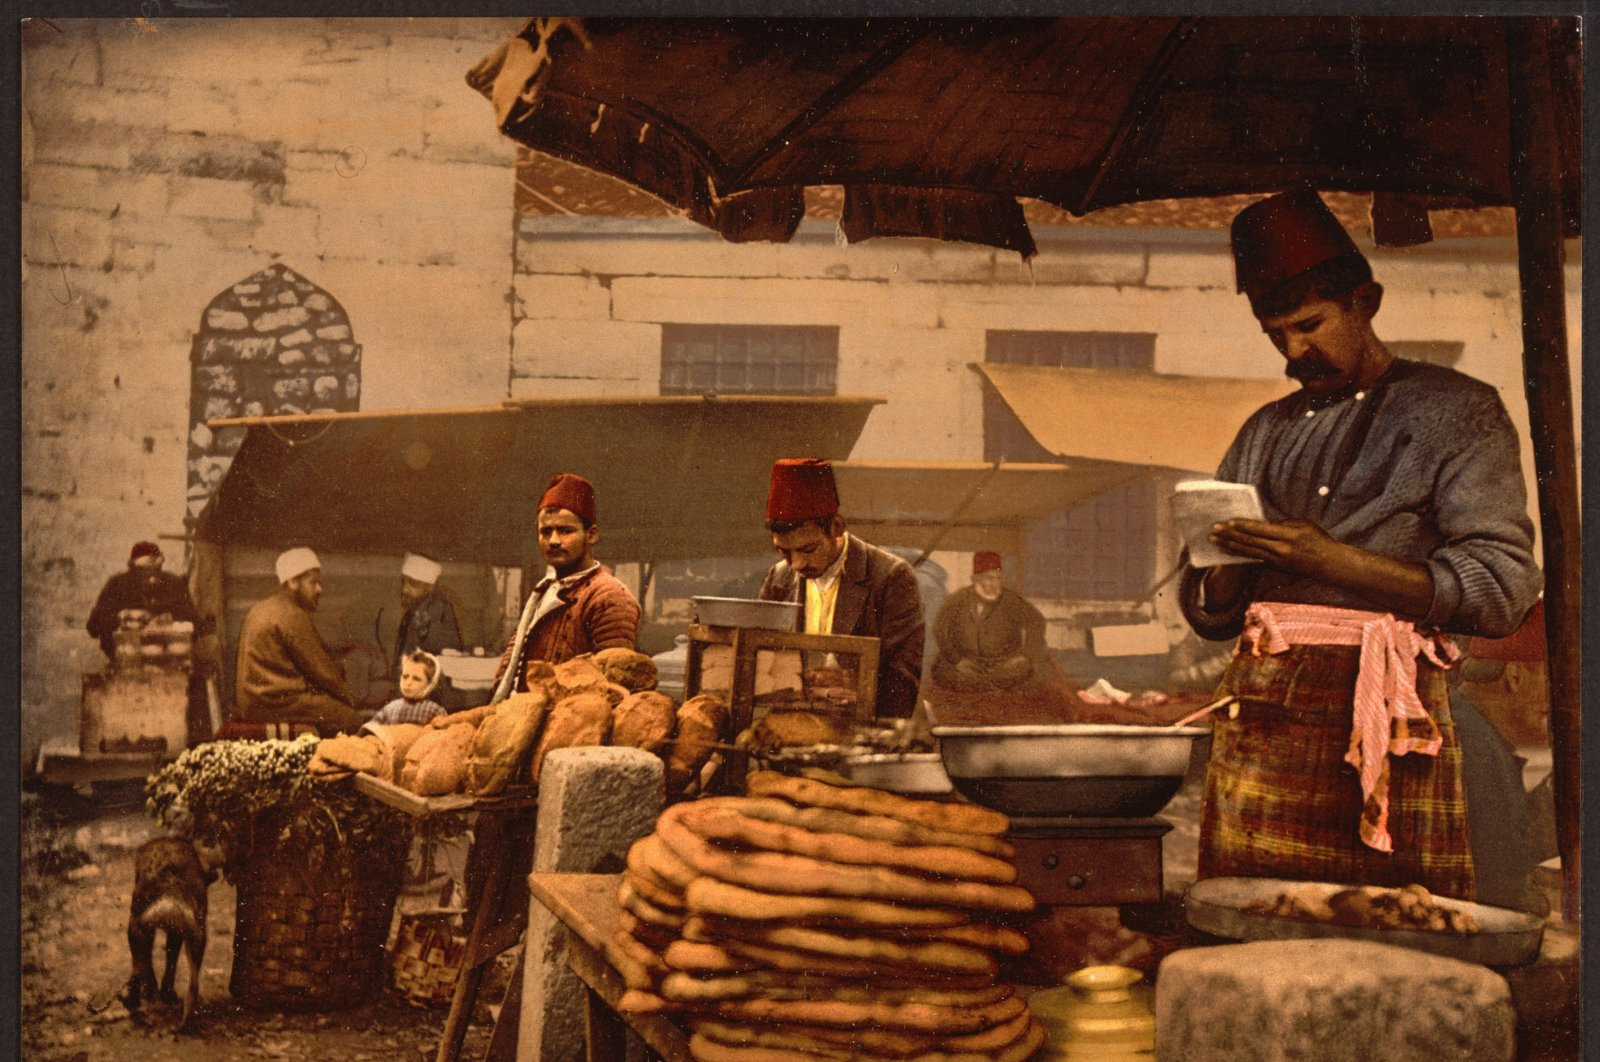 """""""Cook in the rue de Stamboul"""", a painting depicting the streets of Istanbul, circa 1890-1900, Istanbul, retrieved from the Library of Congress. (via WIKIMEDIA COMMONS)"""